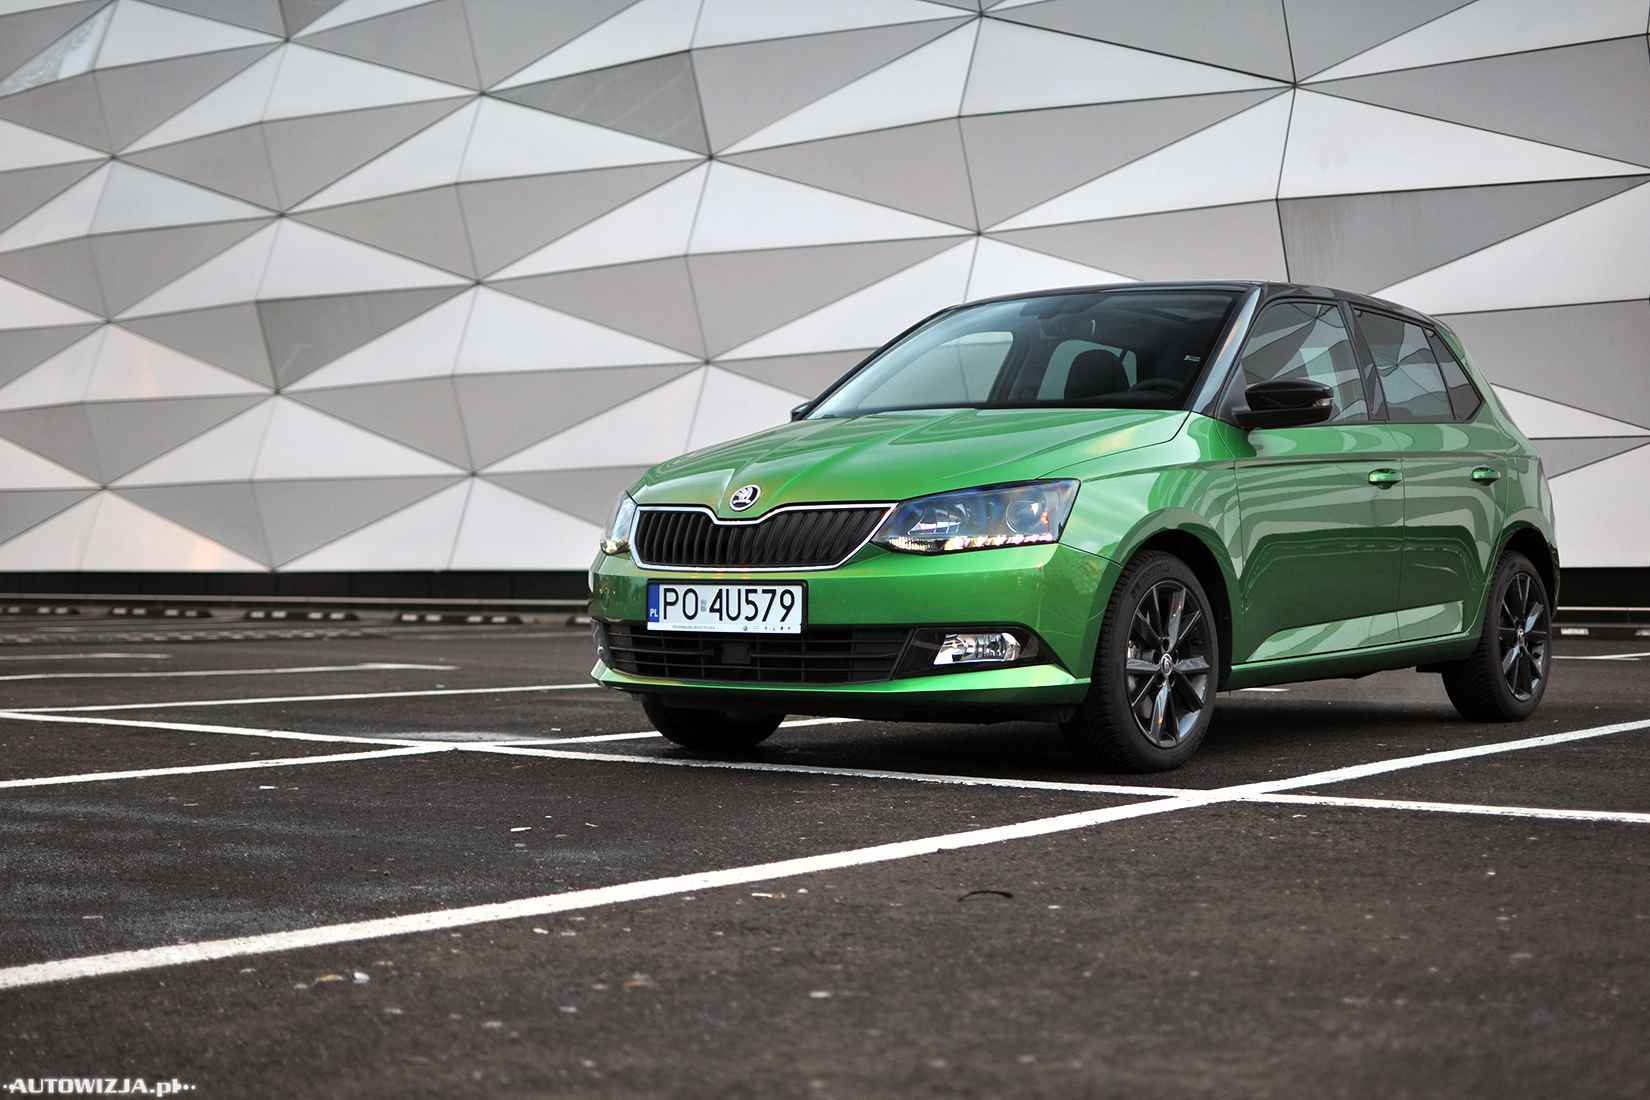 skoda fabia 1 2 tsi 110 km test motoryzacja. Black Bedroom Furniture Sets. Home Design Ideas